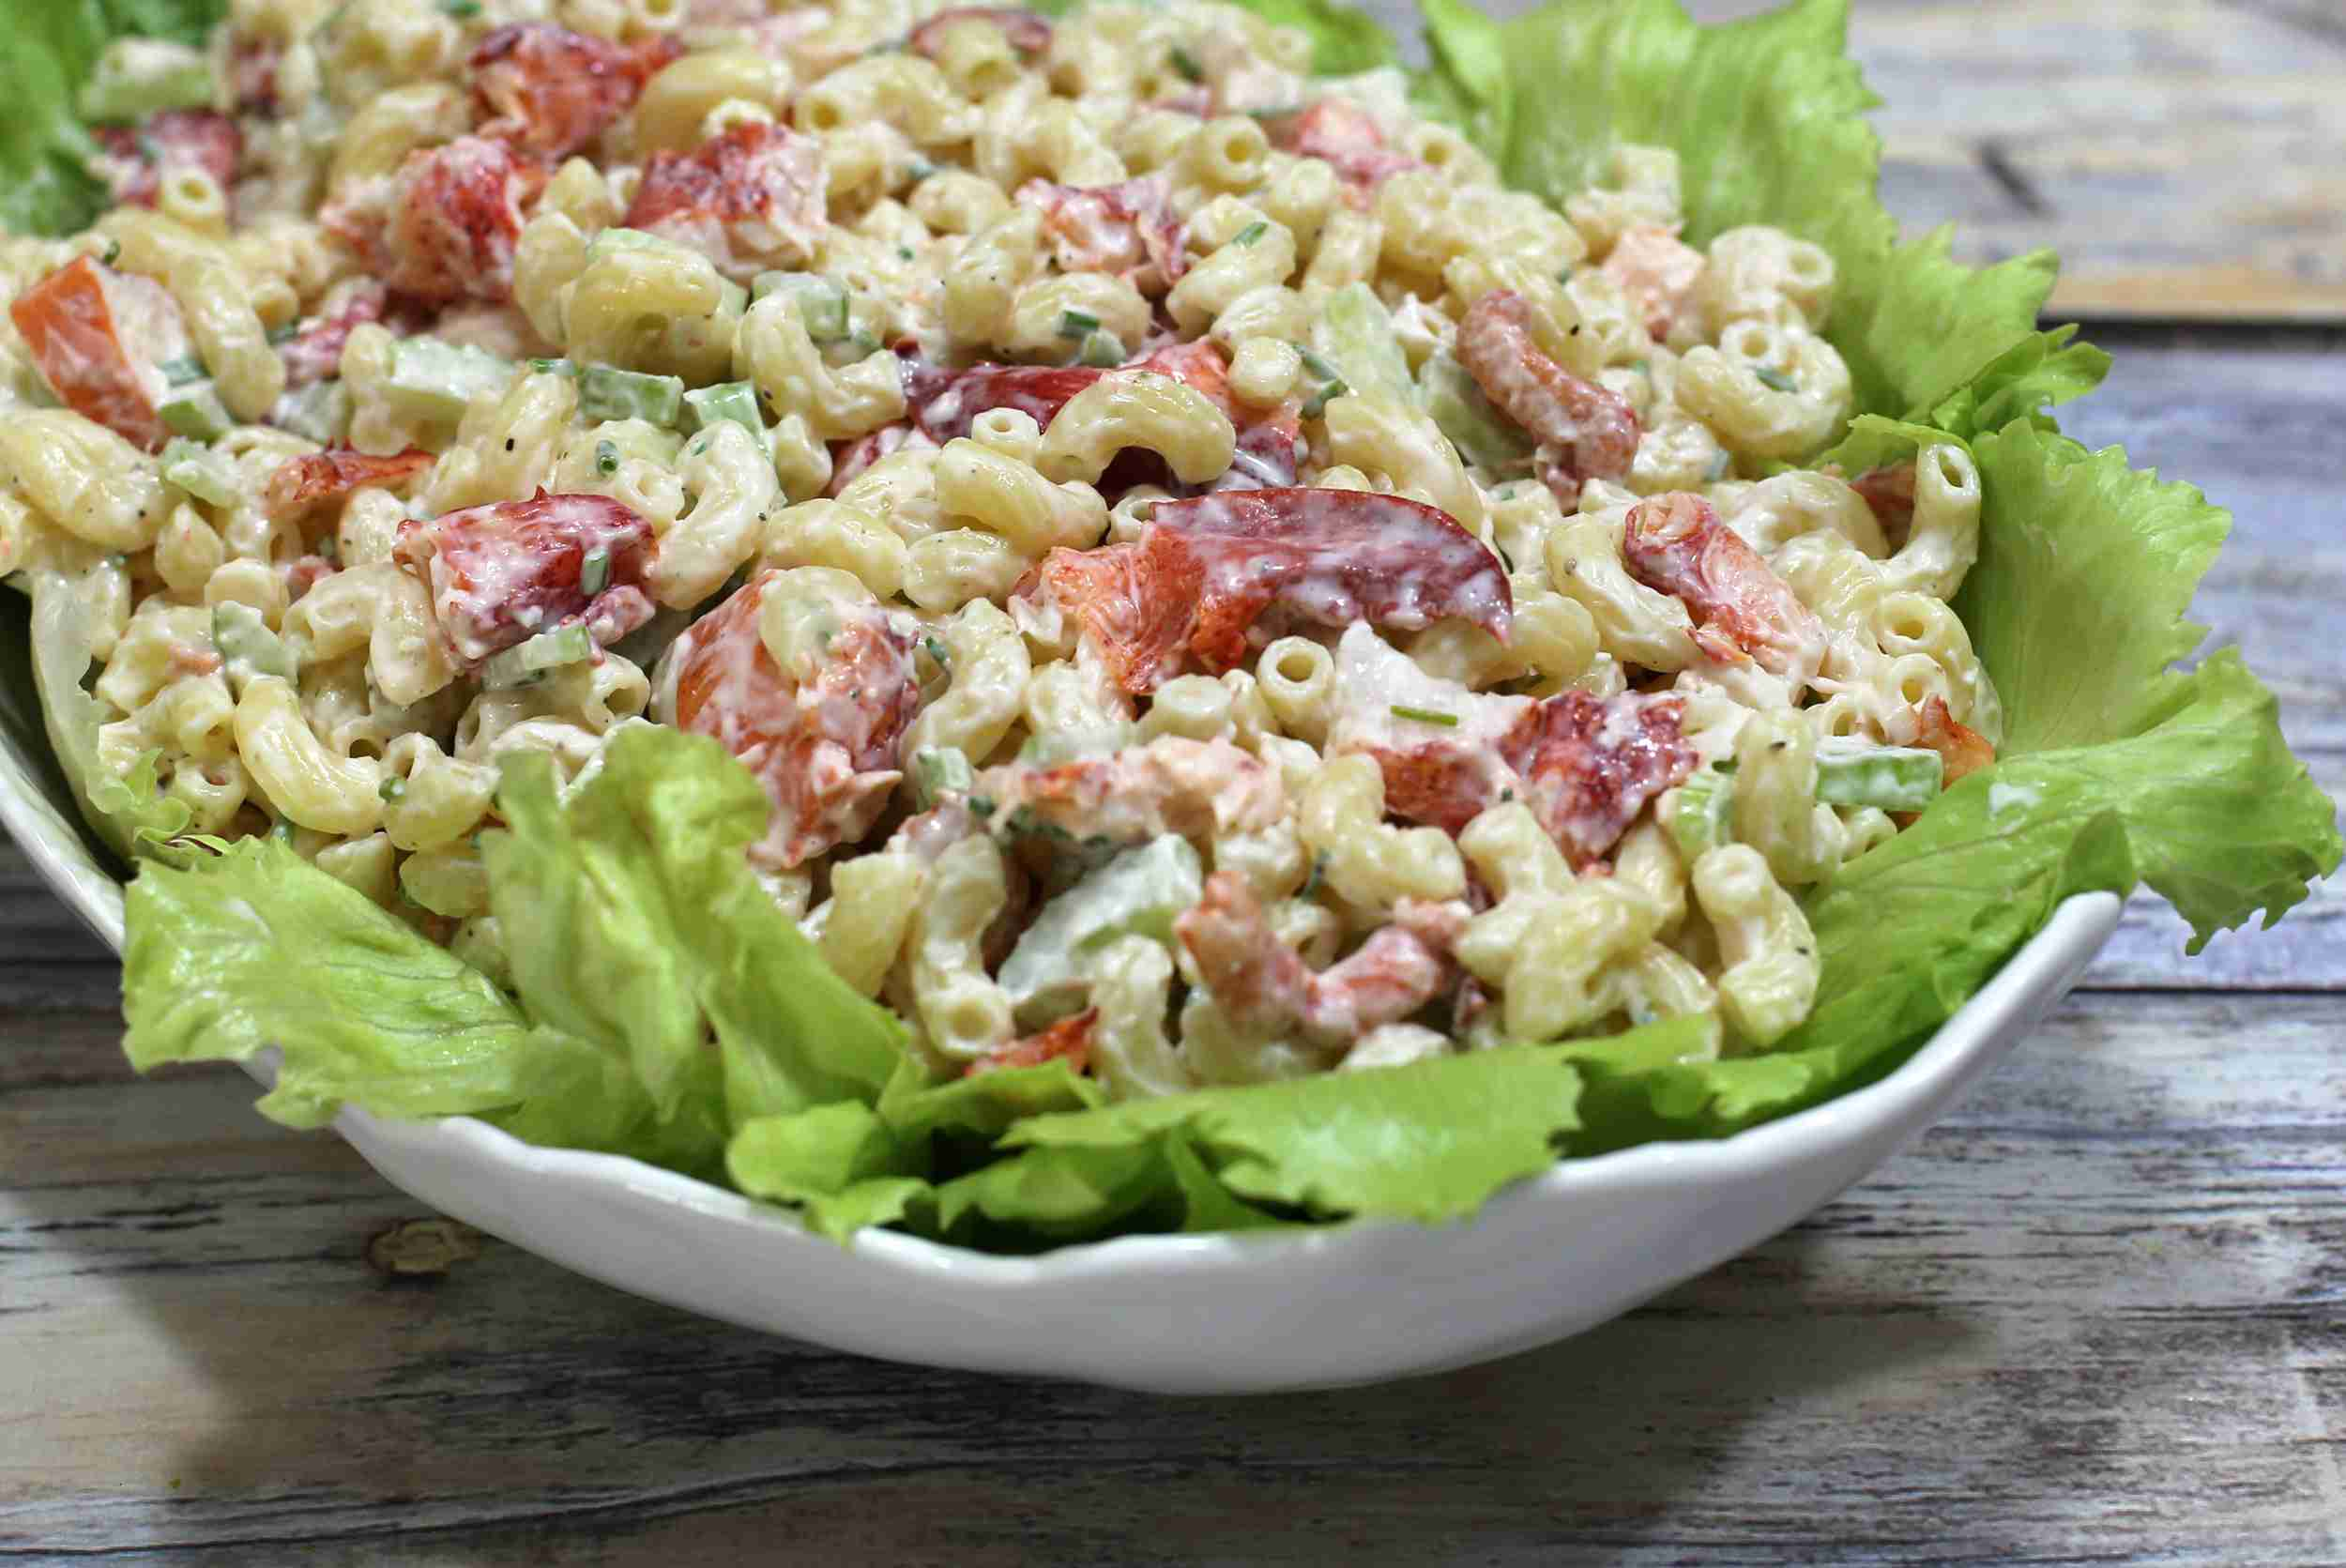 Lobster and Macaroni Salad